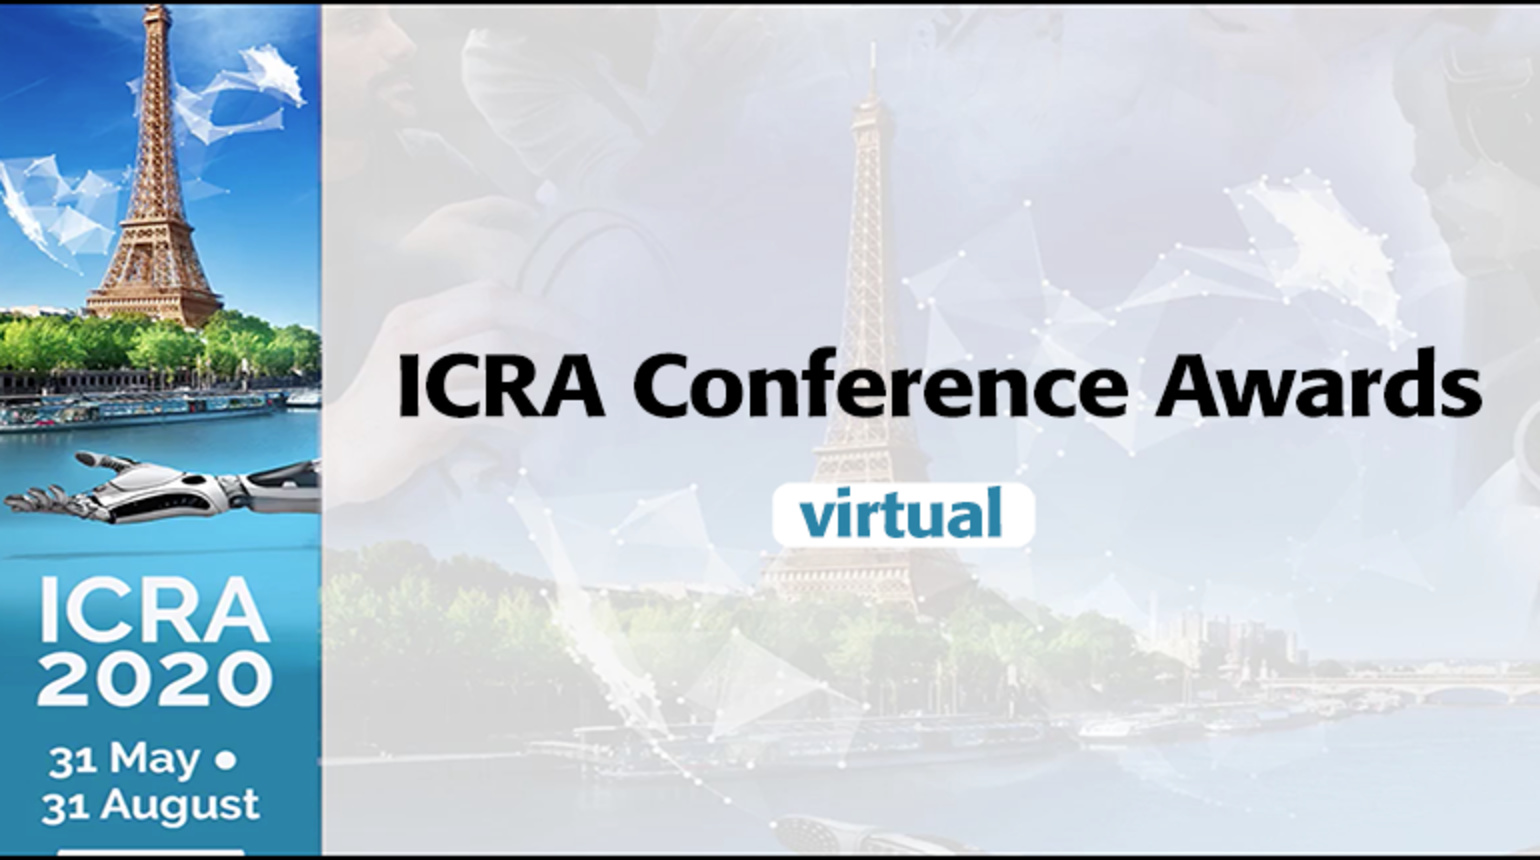 ICRA 2020 Conference Awards